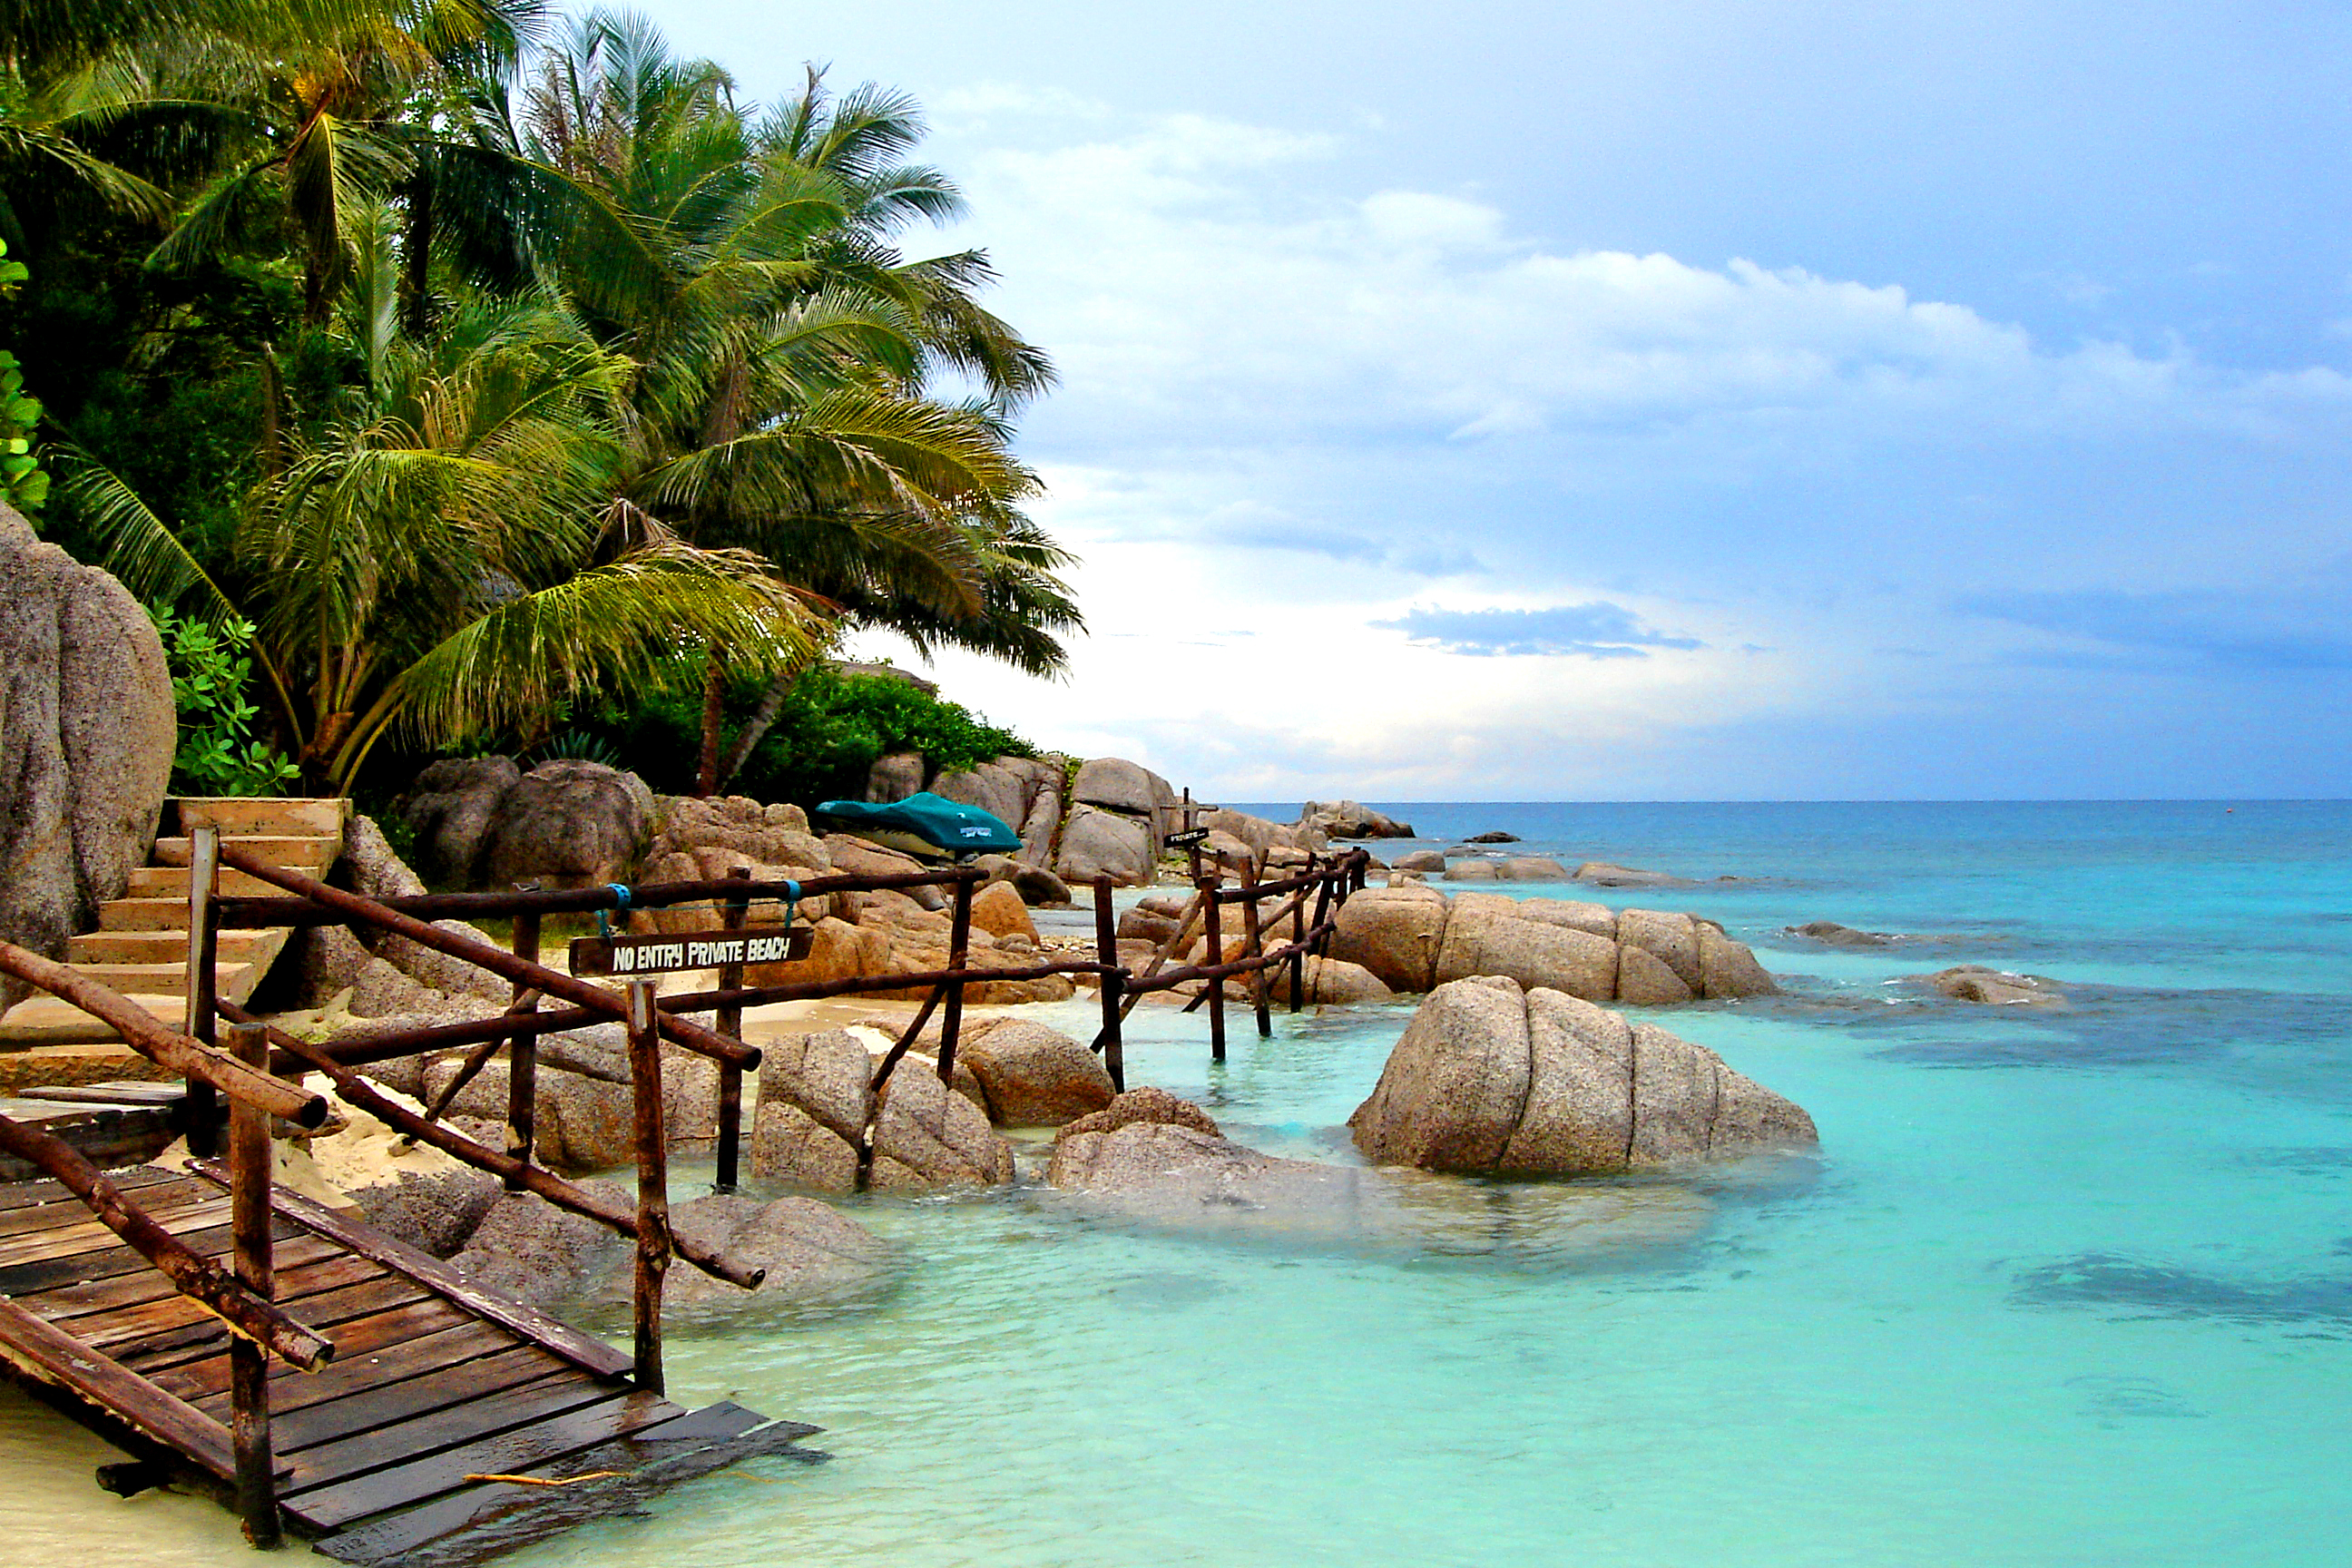 The Traveller's Choice For Best Island In Asia, At Number 1, Is The Serene **Ko Tao**